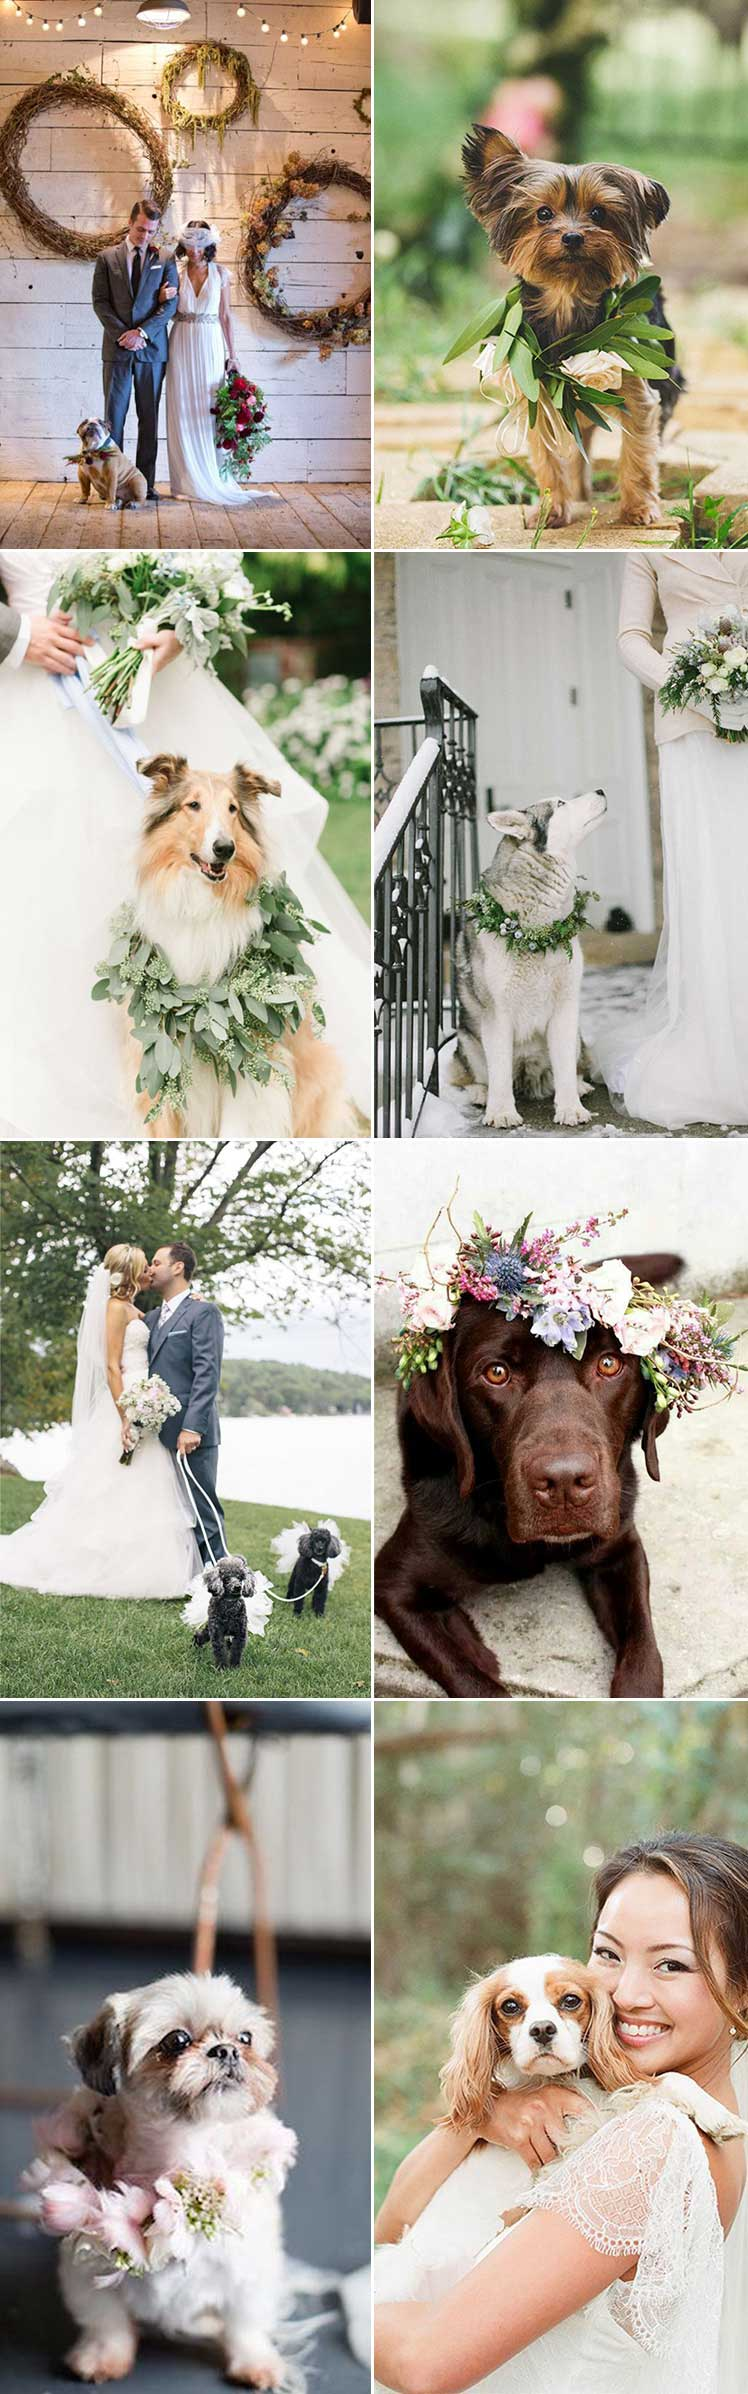 Including your dog in your wedding day